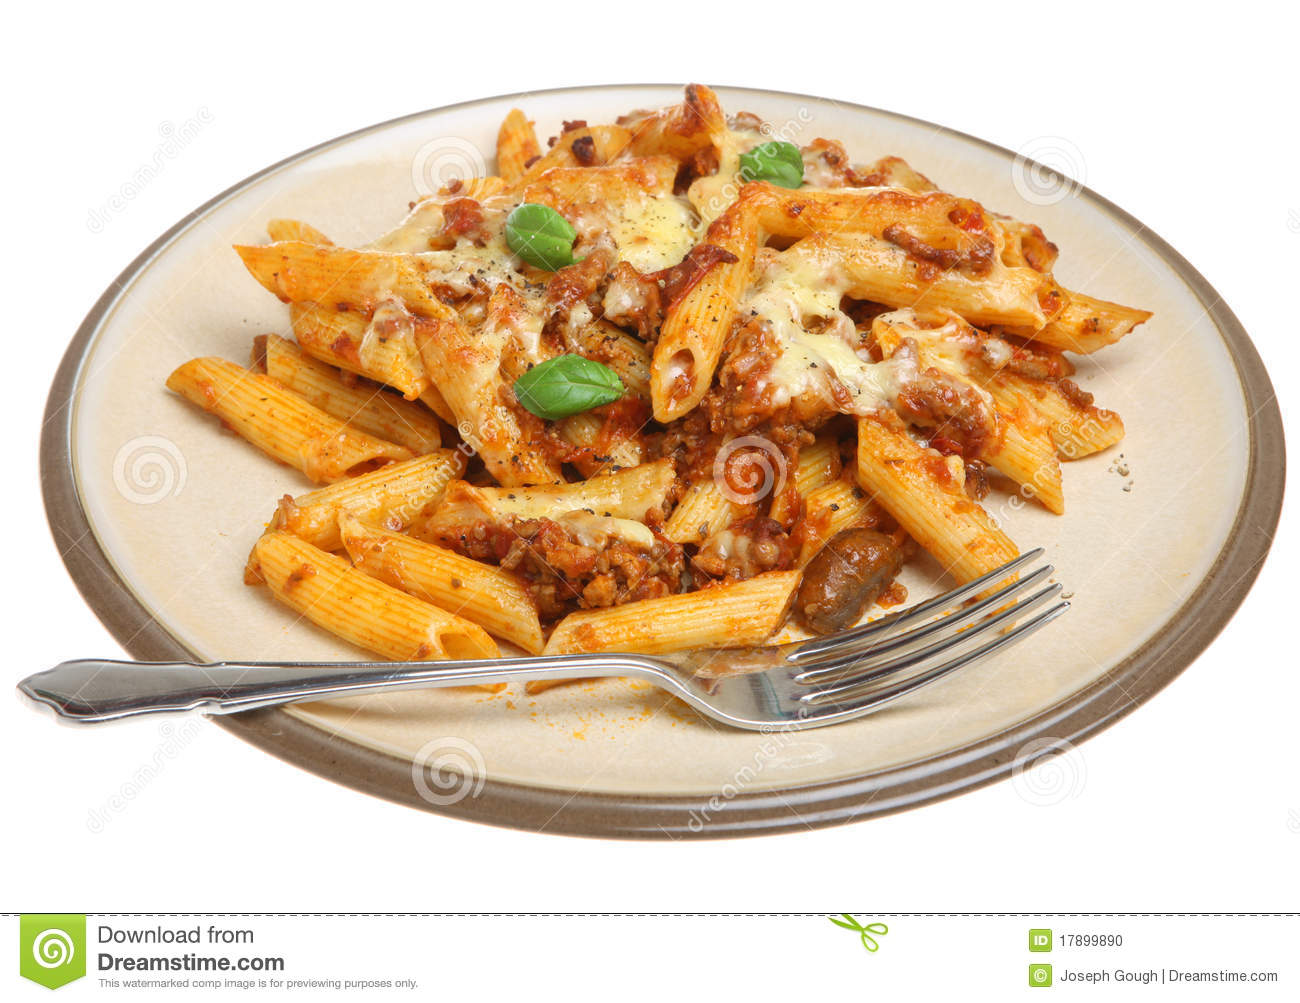 Baked Pasta With Bolognese Sauce Stock Photo - Image: 17899890